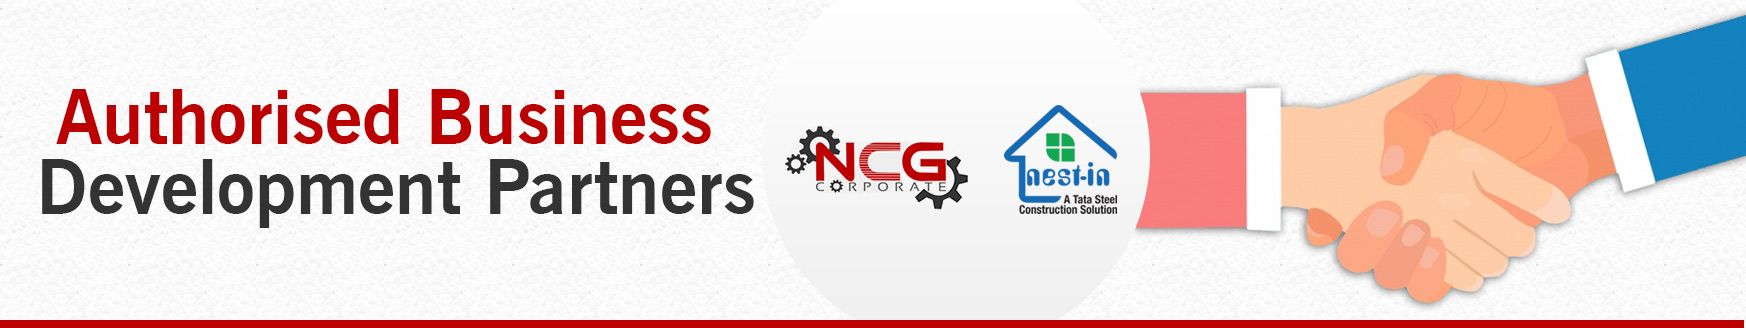 Ncgcorporate Steel Construction Solutions